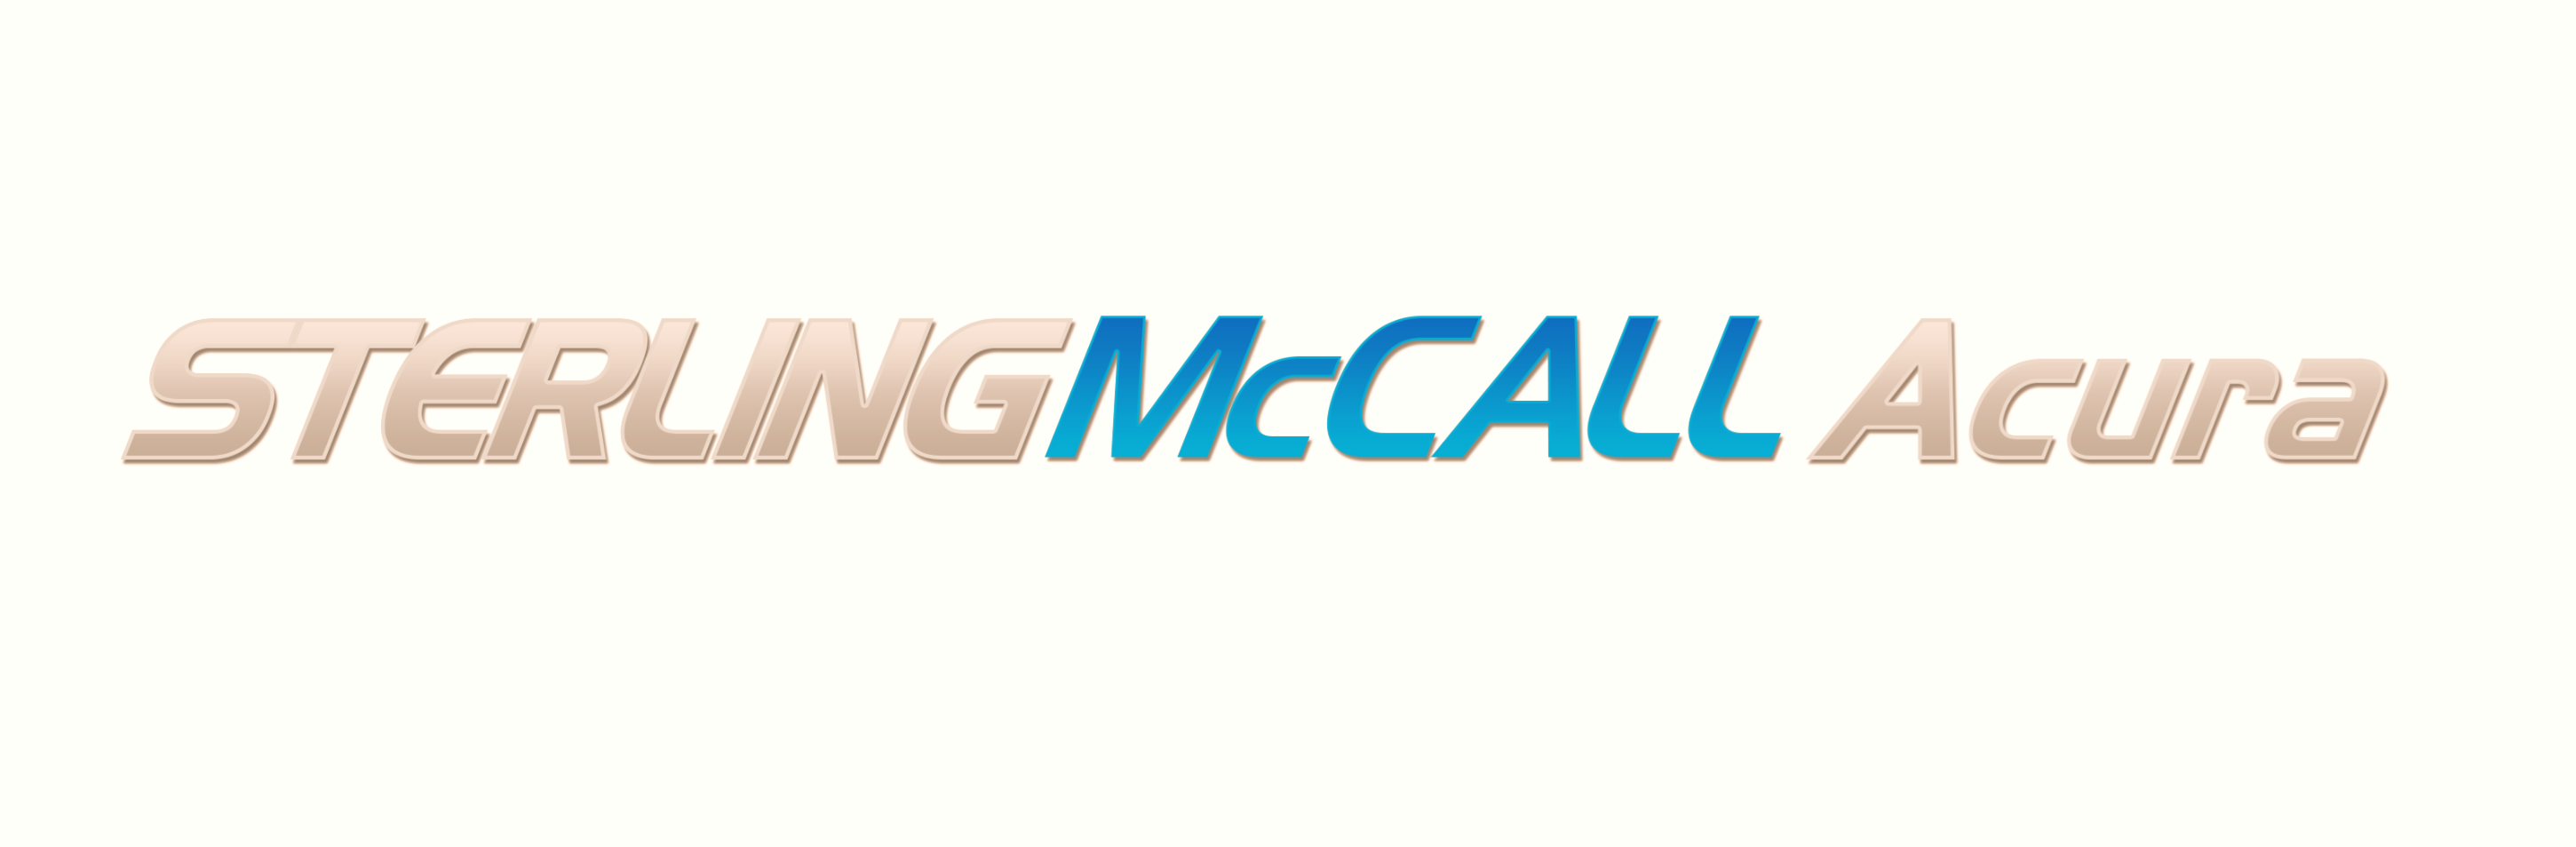 Sterling McCall Acura_edited.png